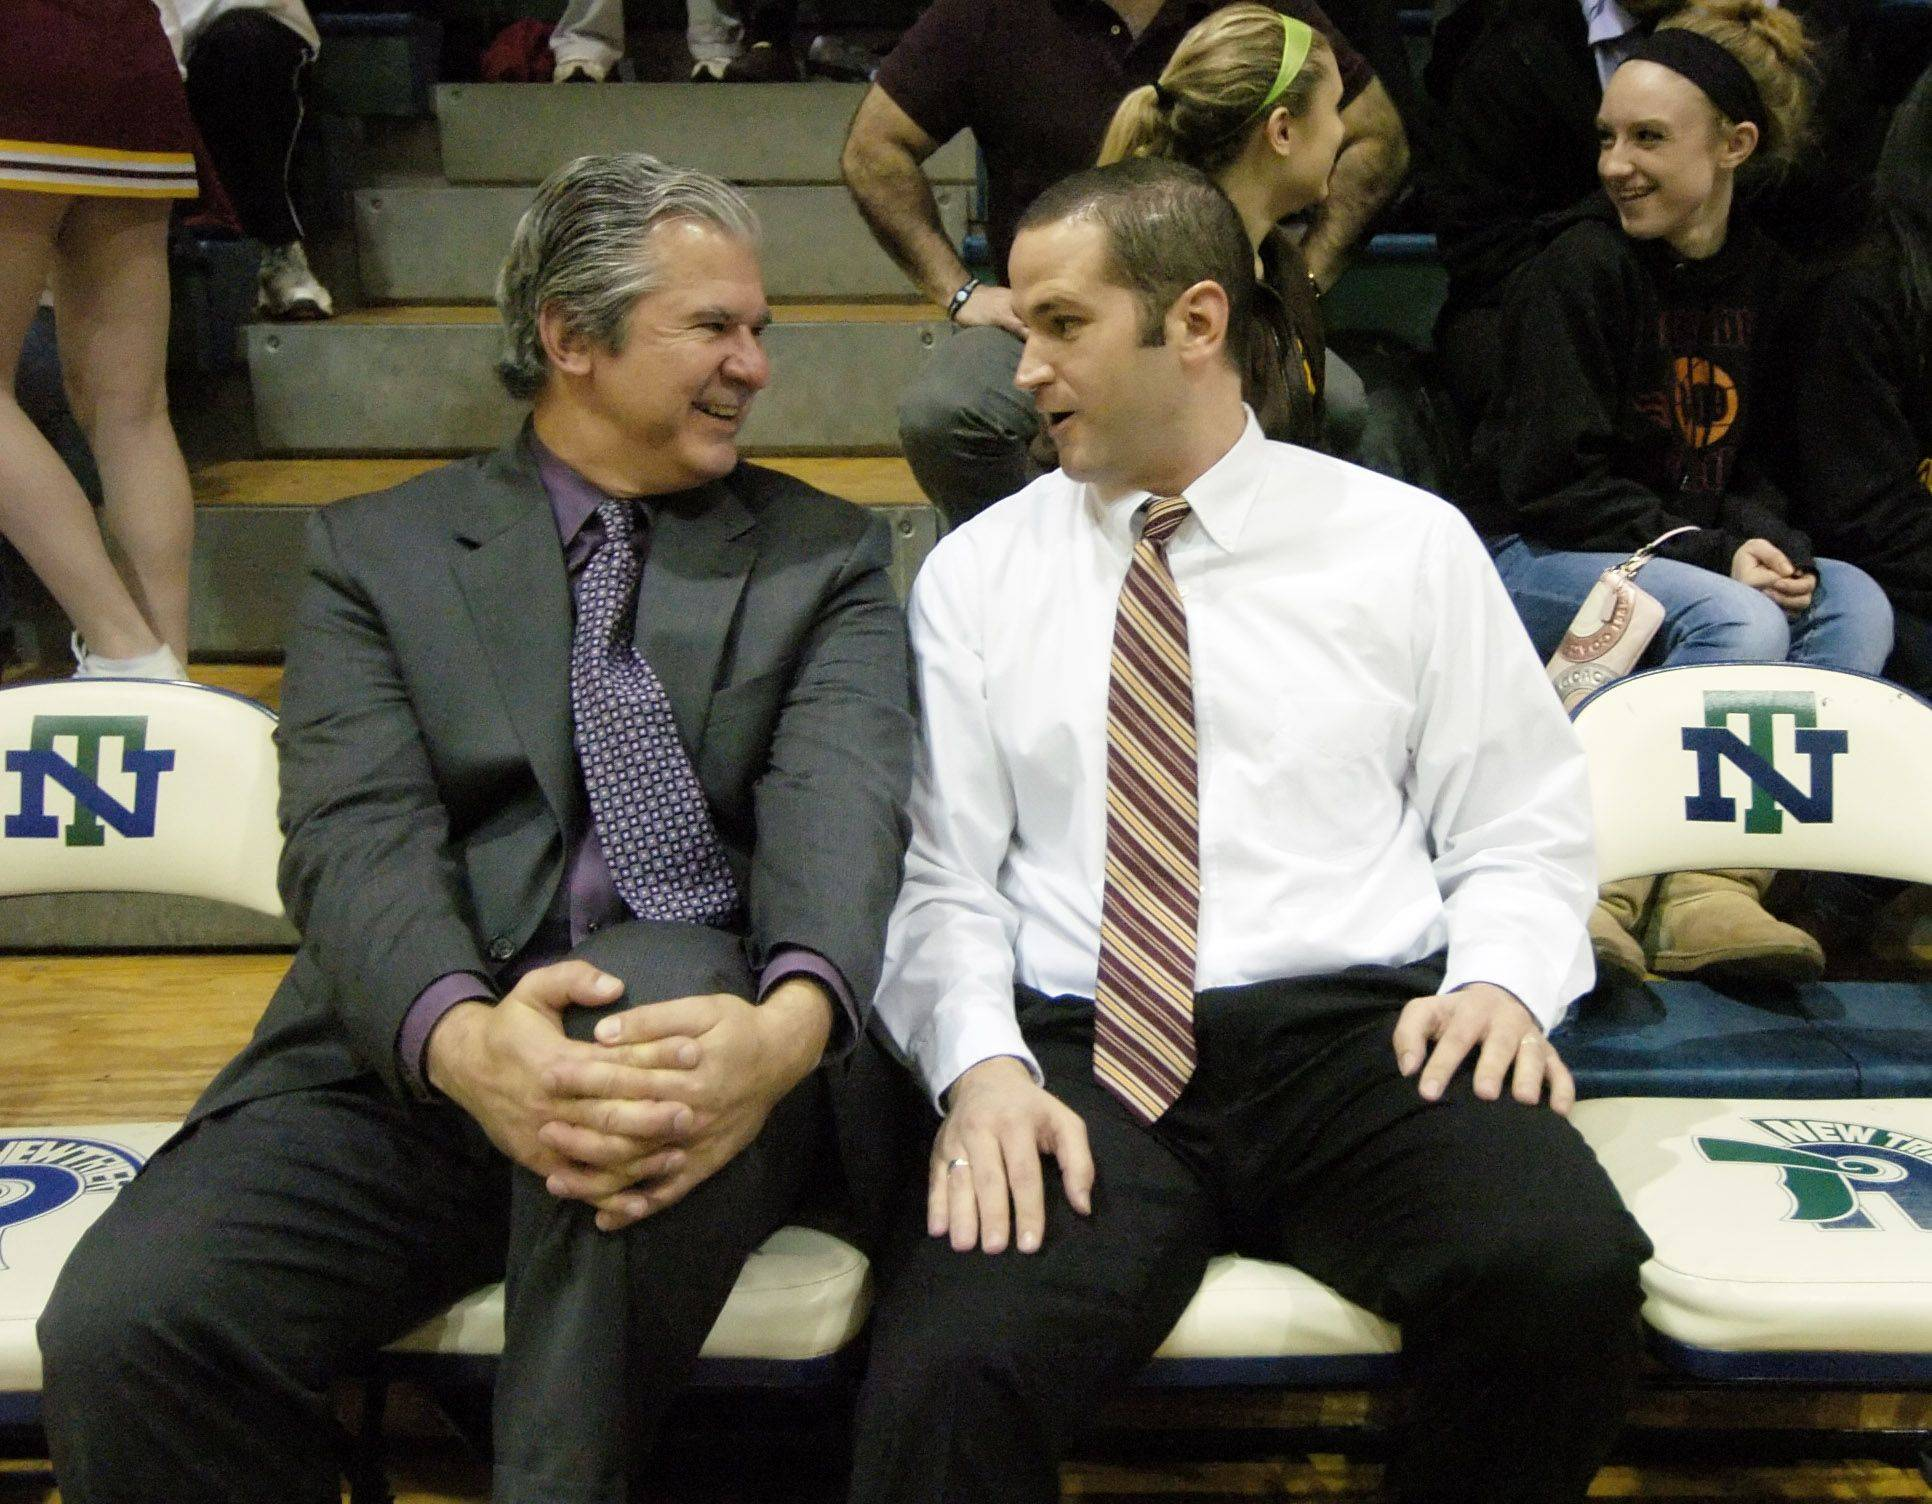 Niles West coach Bob Williams, left, and Schaumburg coach Matt Walsh talk before Wednesday's New Trier sectional semifinal game.